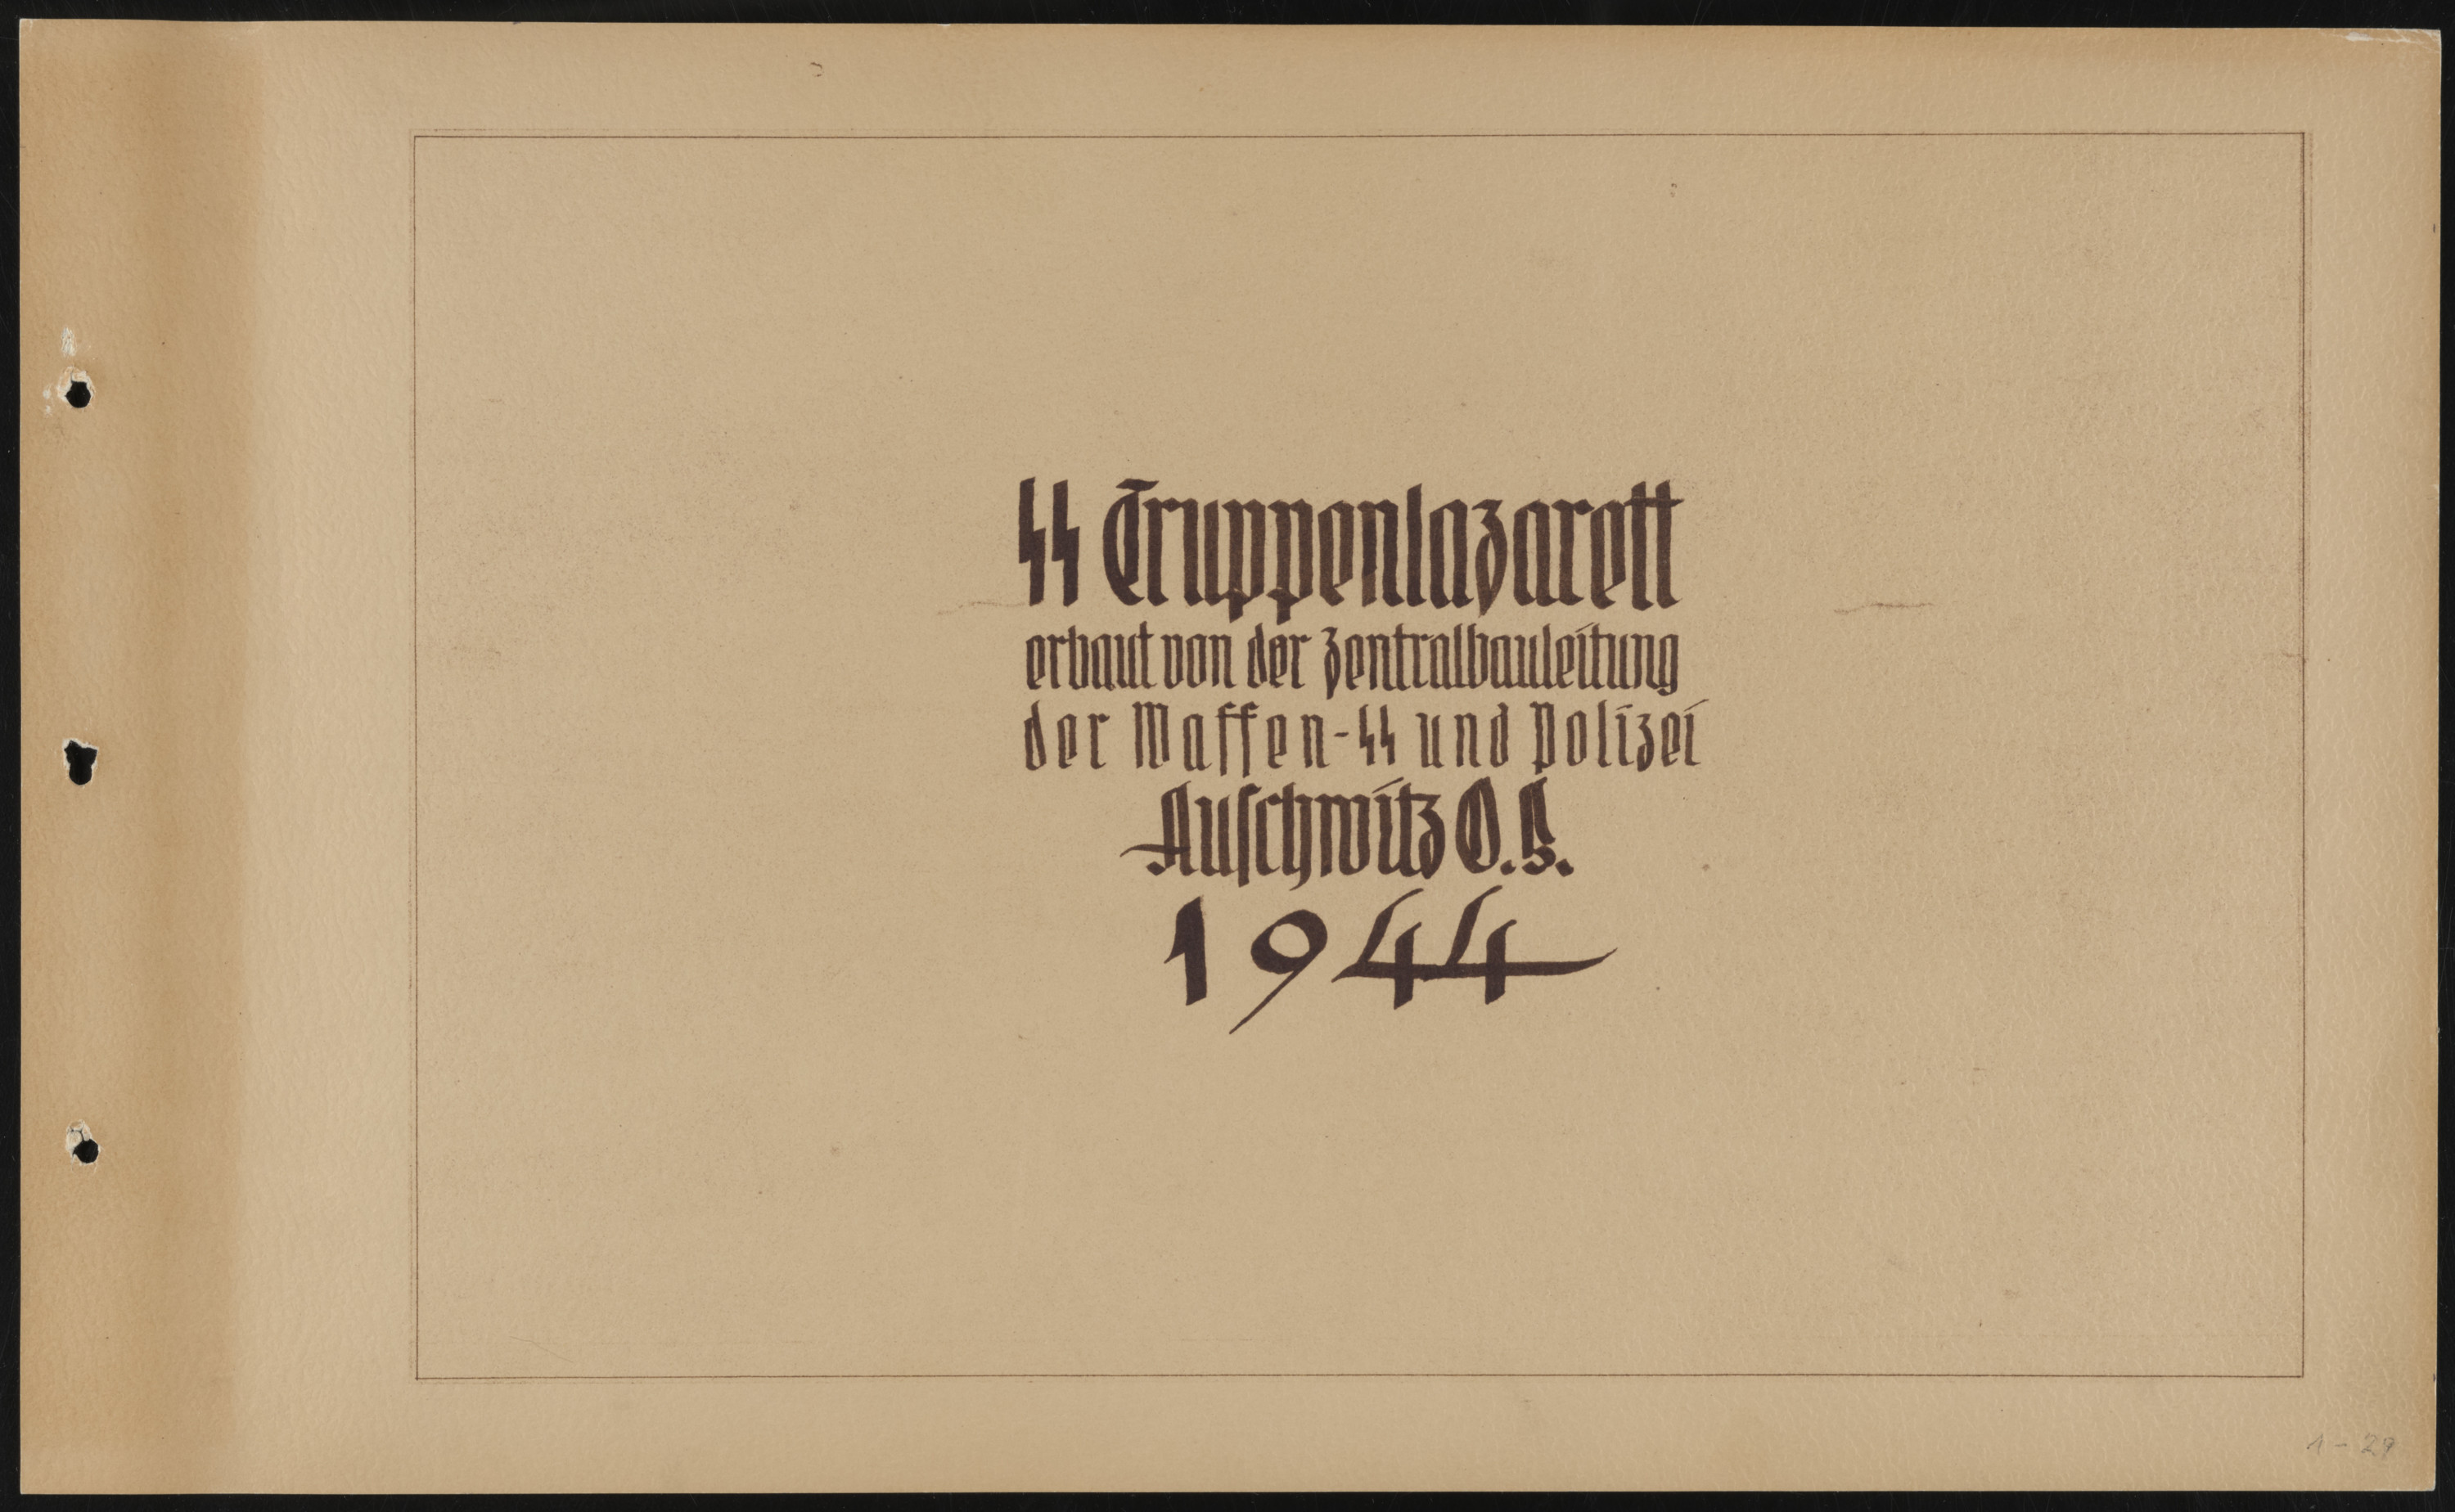 Title page of a photo album documenting the creation of the SS Truppenlazarett, the SS troop hospital in Auschwitz.